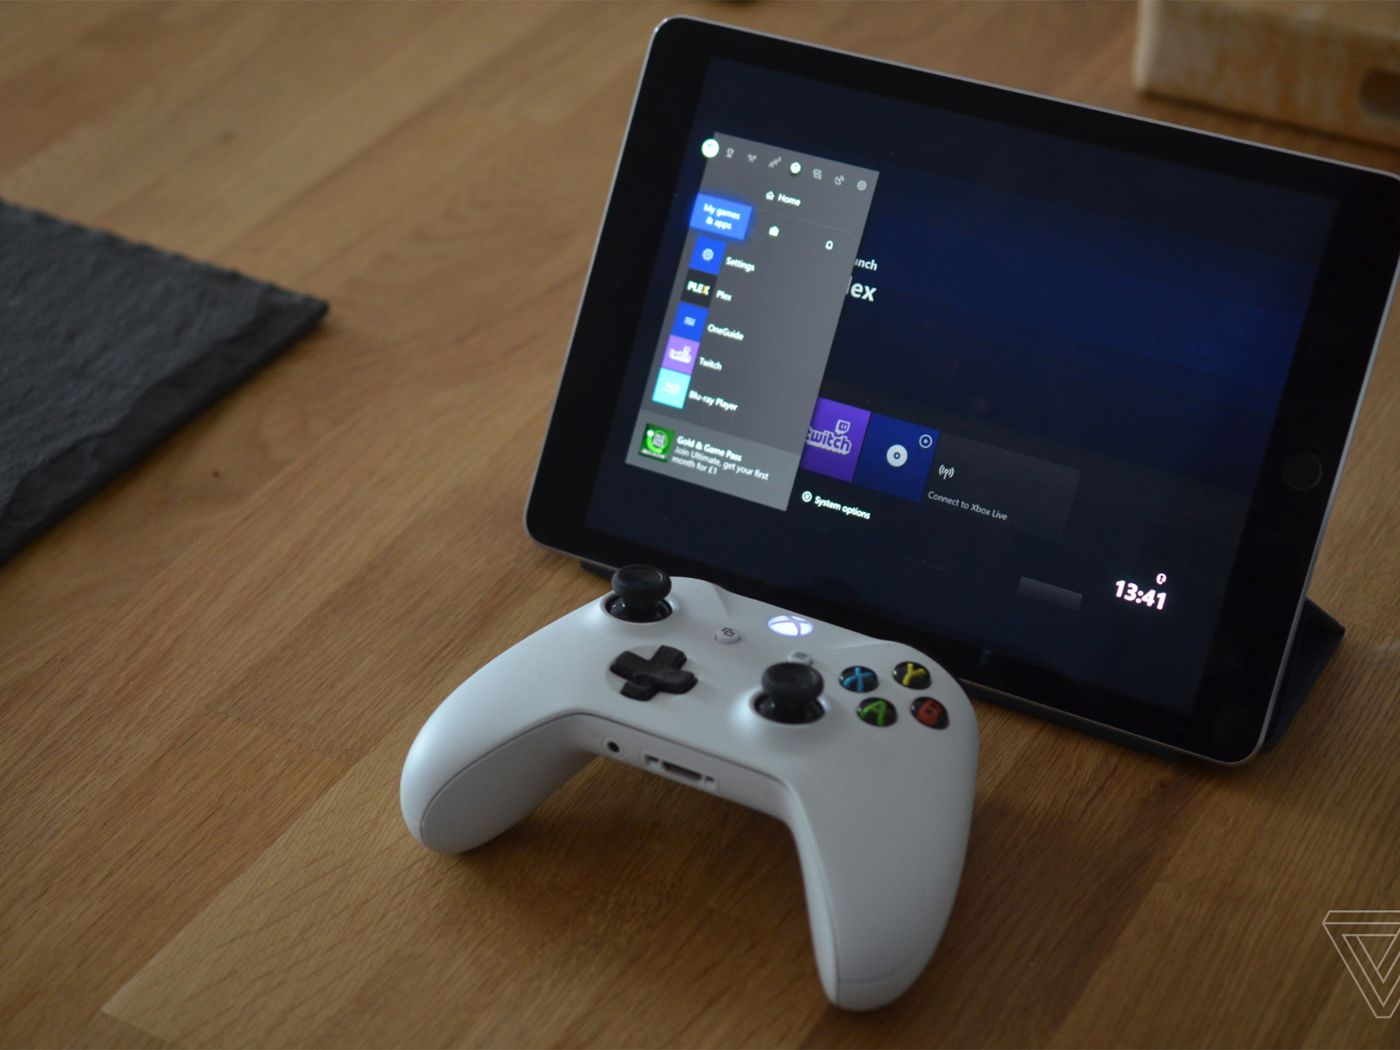 Apple S Xbox And Ps4 Controller Support Turns An Ipad Into A